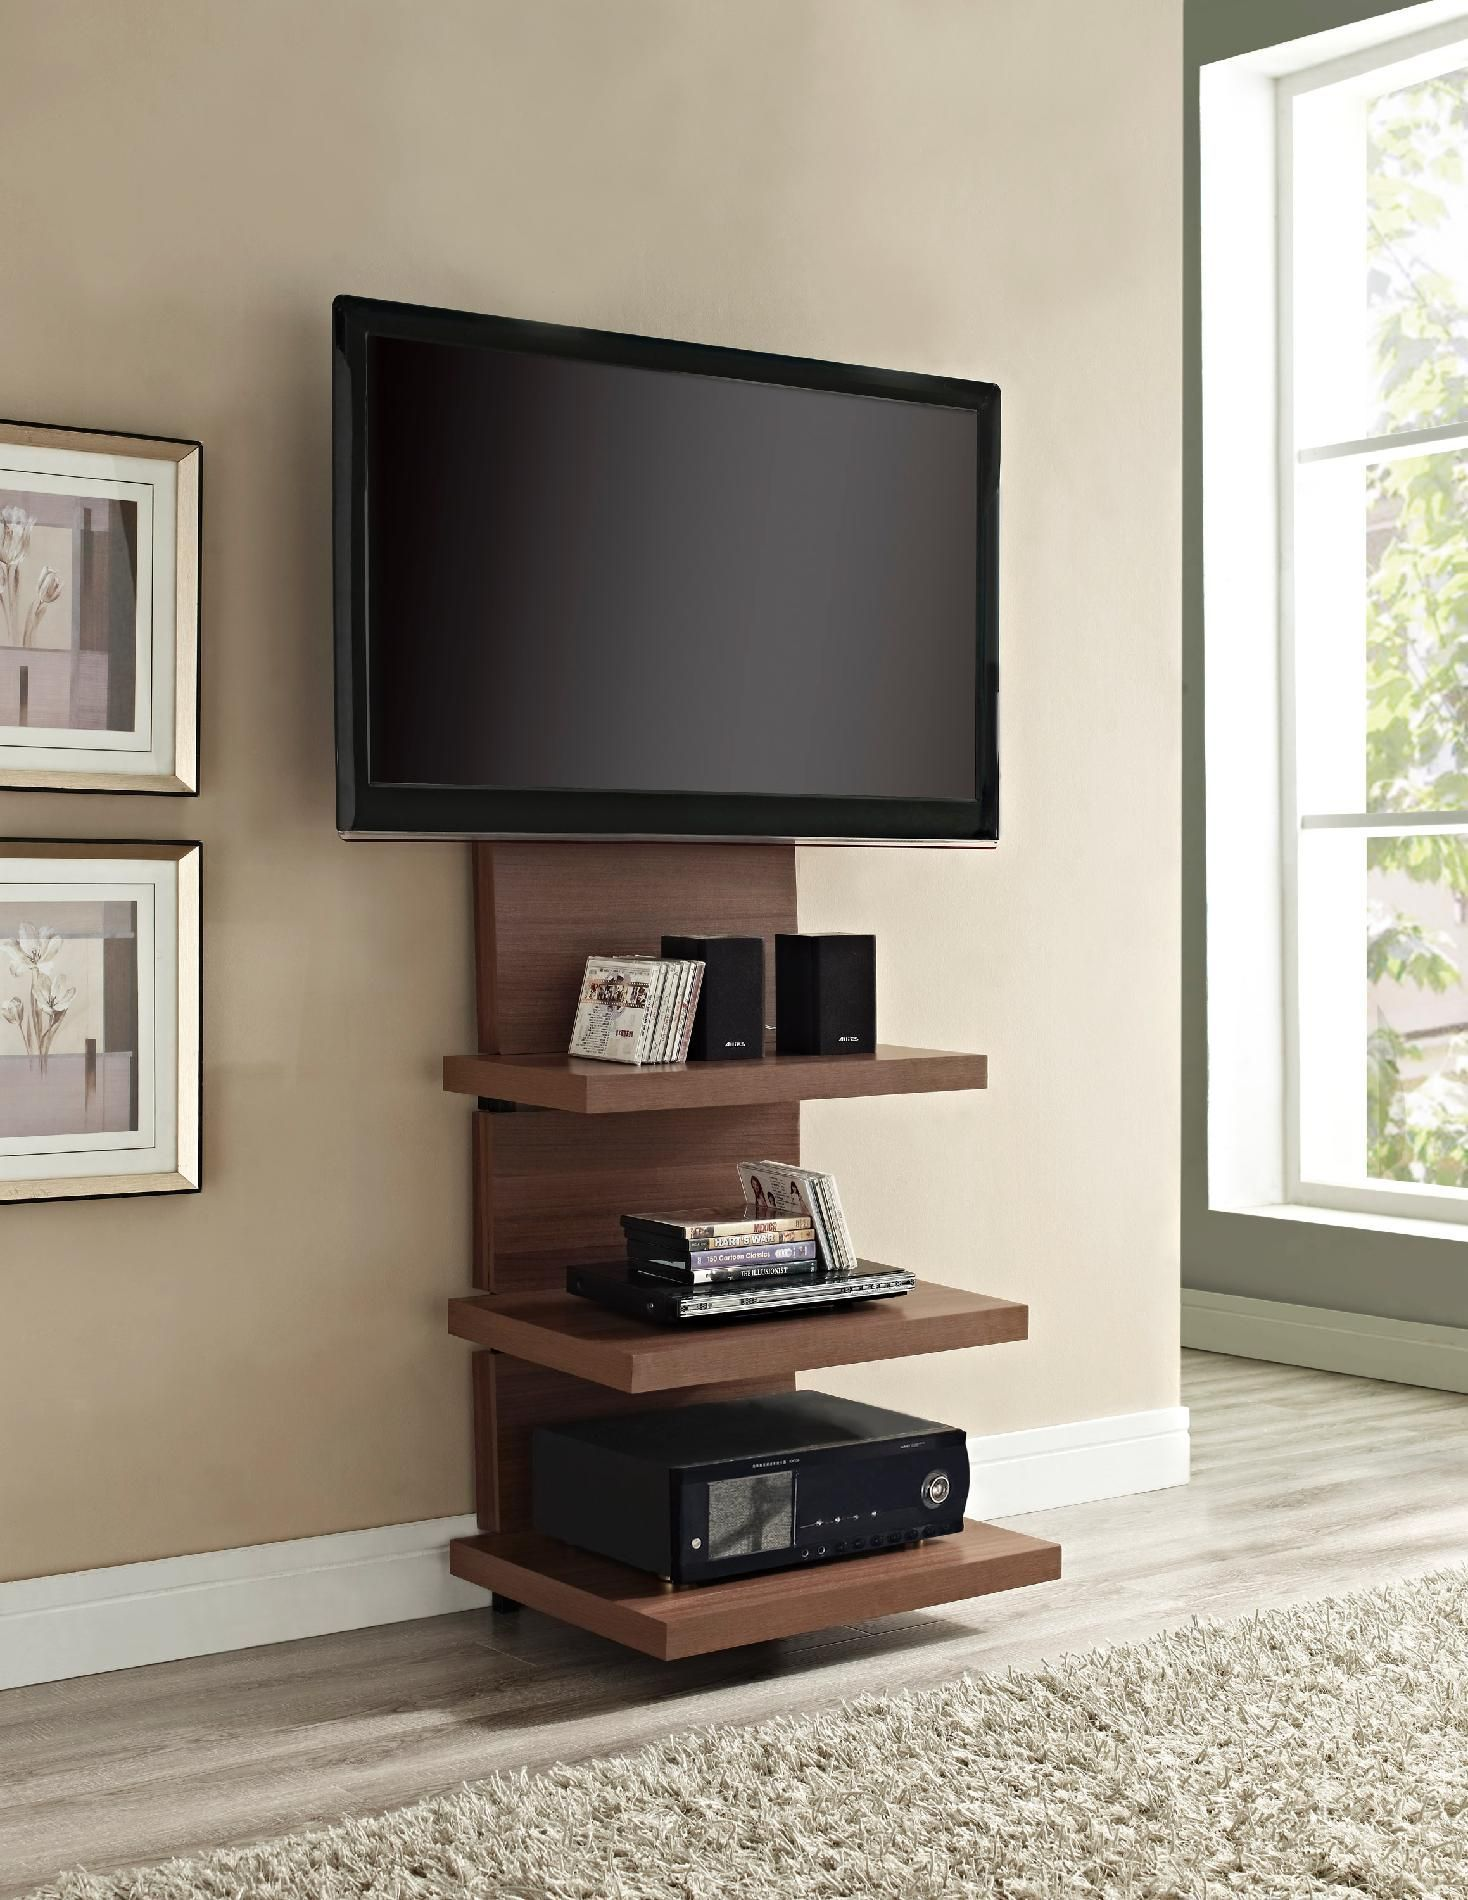 Tv Wall Mount Style Ideas To Combine With Your Attractive And